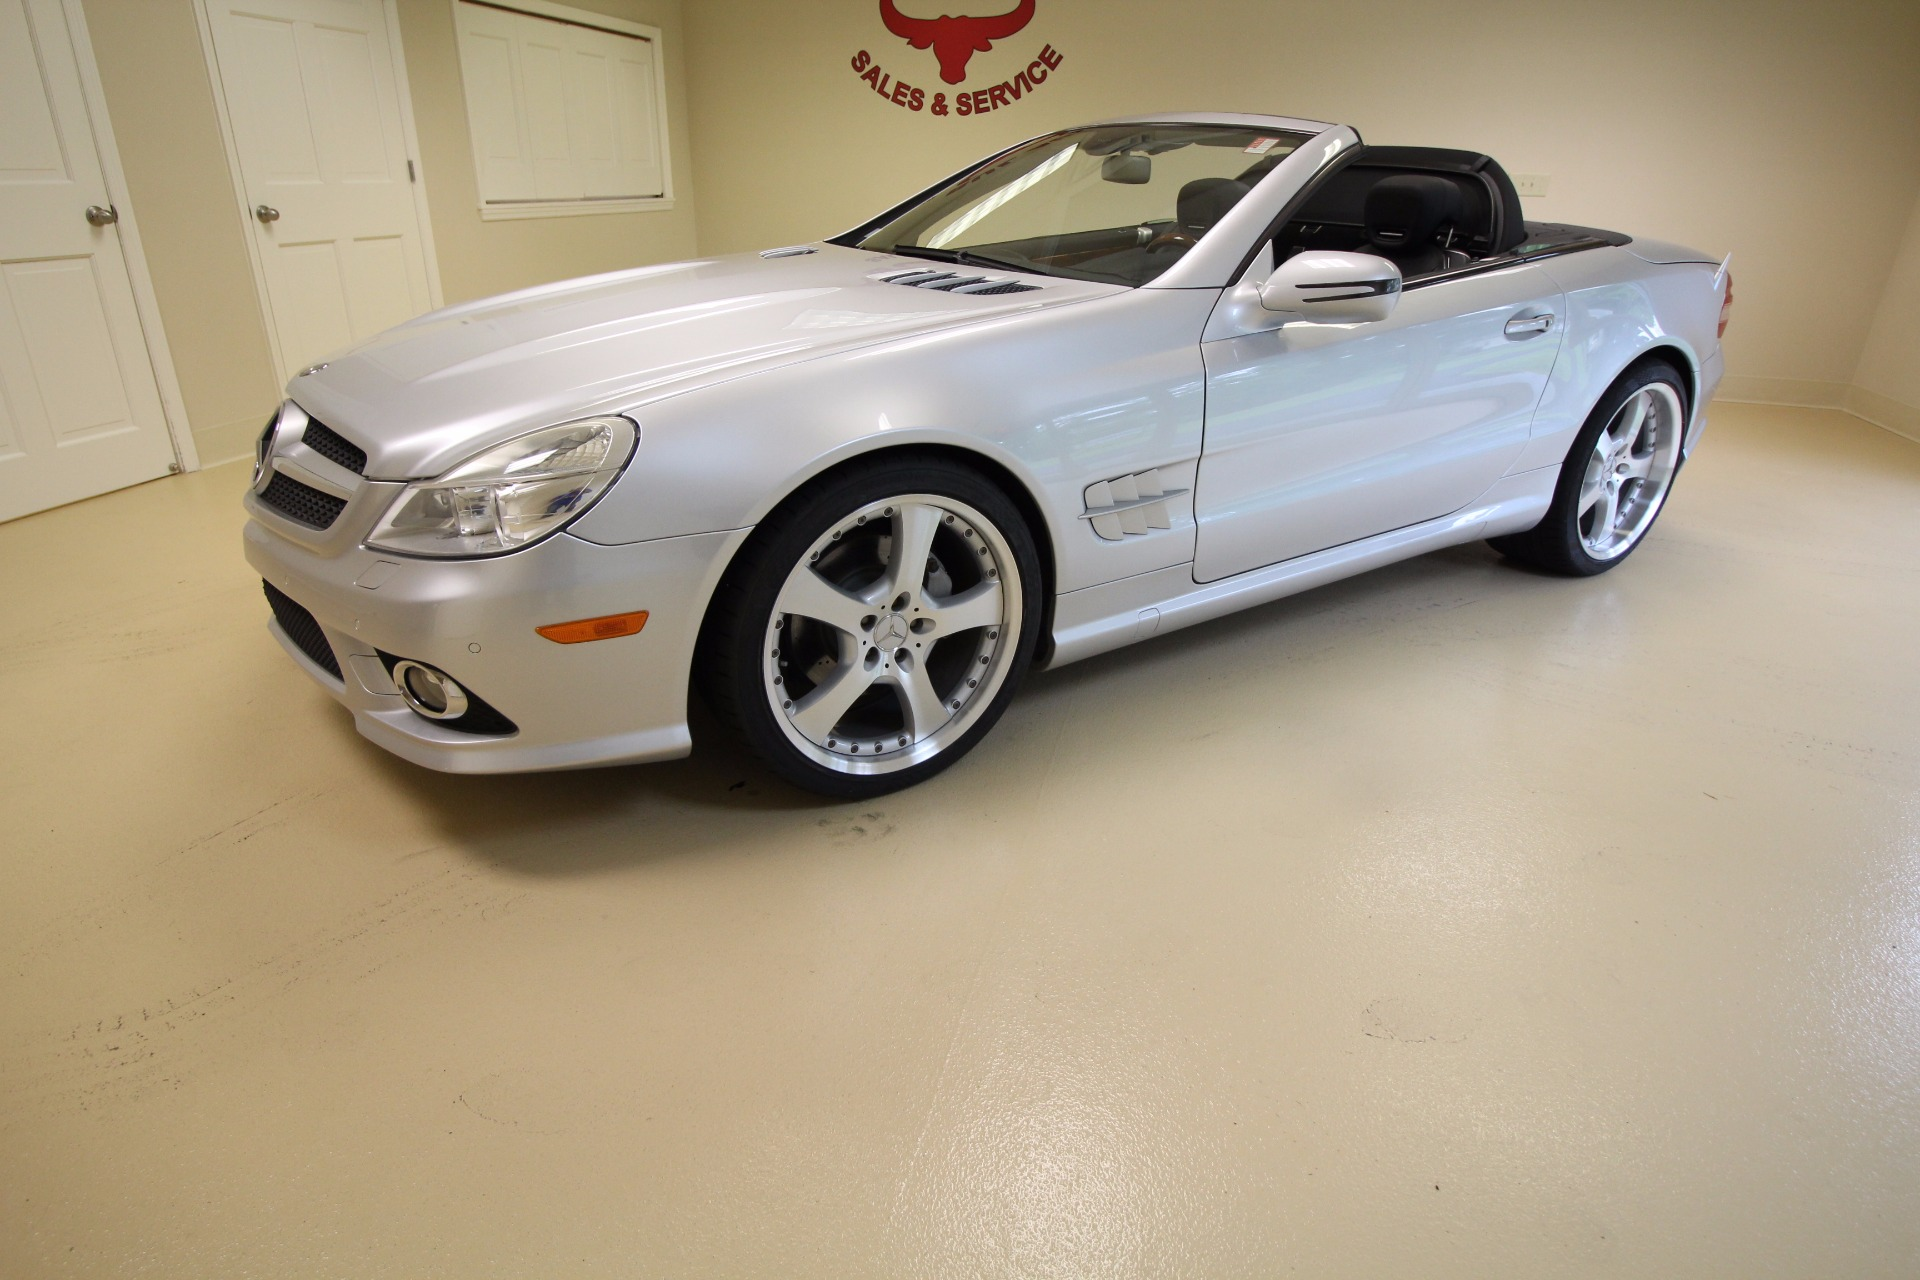 main mercedes va vienna l benz cabriolet used sale htm c convertible for stock near